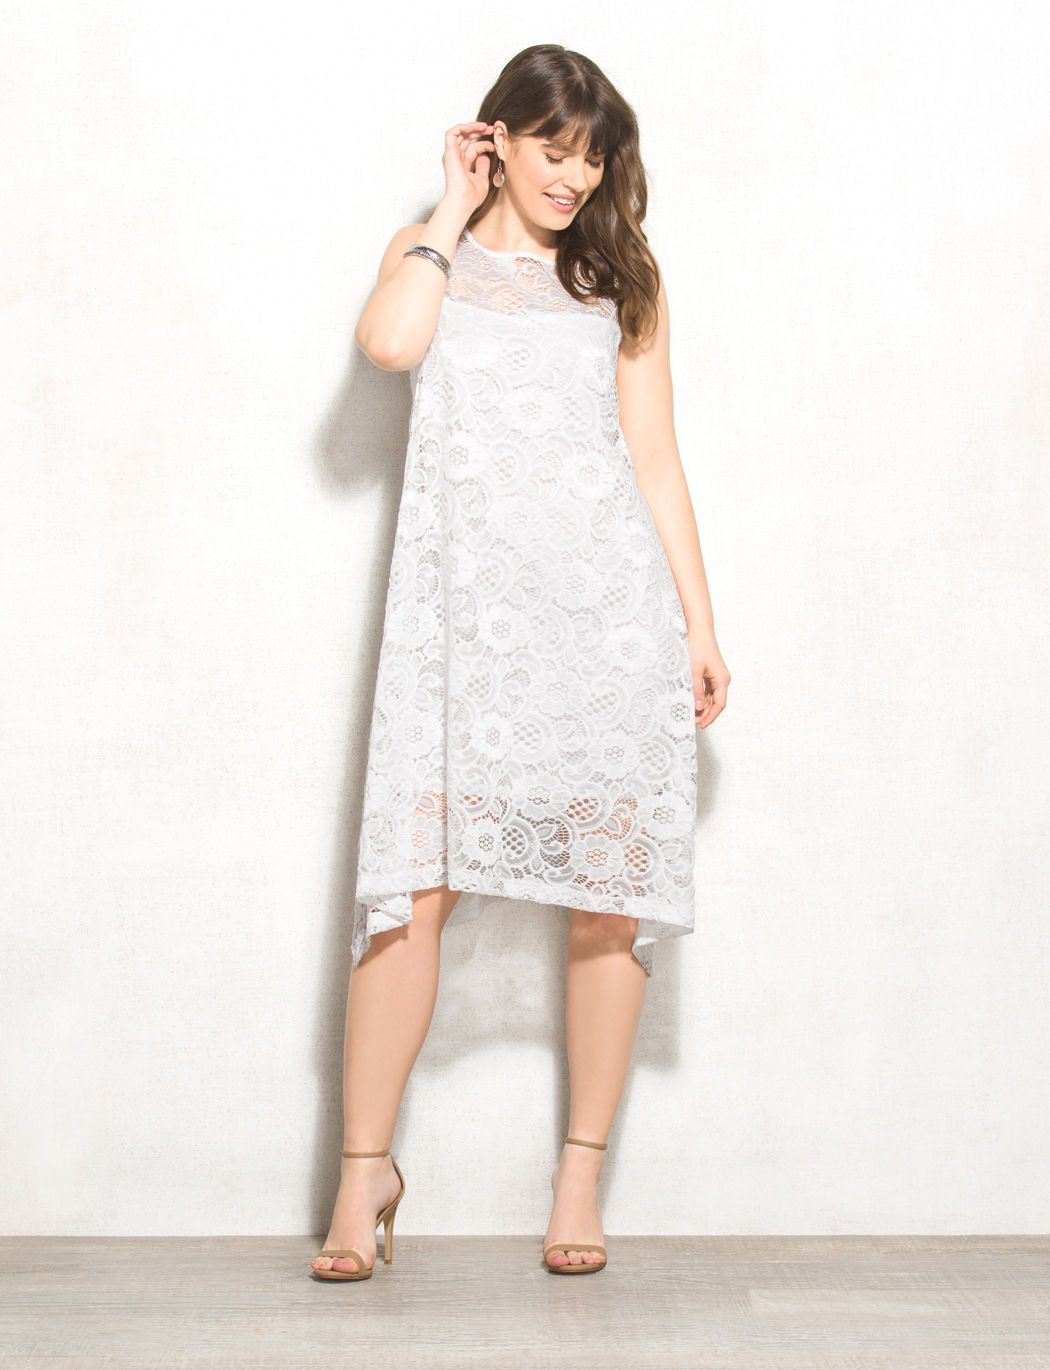 Slip Into Something Light And Breezy Like This Lace Trapeze Dress Perfect For Everything From Dinner To Parties To Casual We Dresses Trapeze Dress Plus Size [ 1370 x 1050 Pixel ]